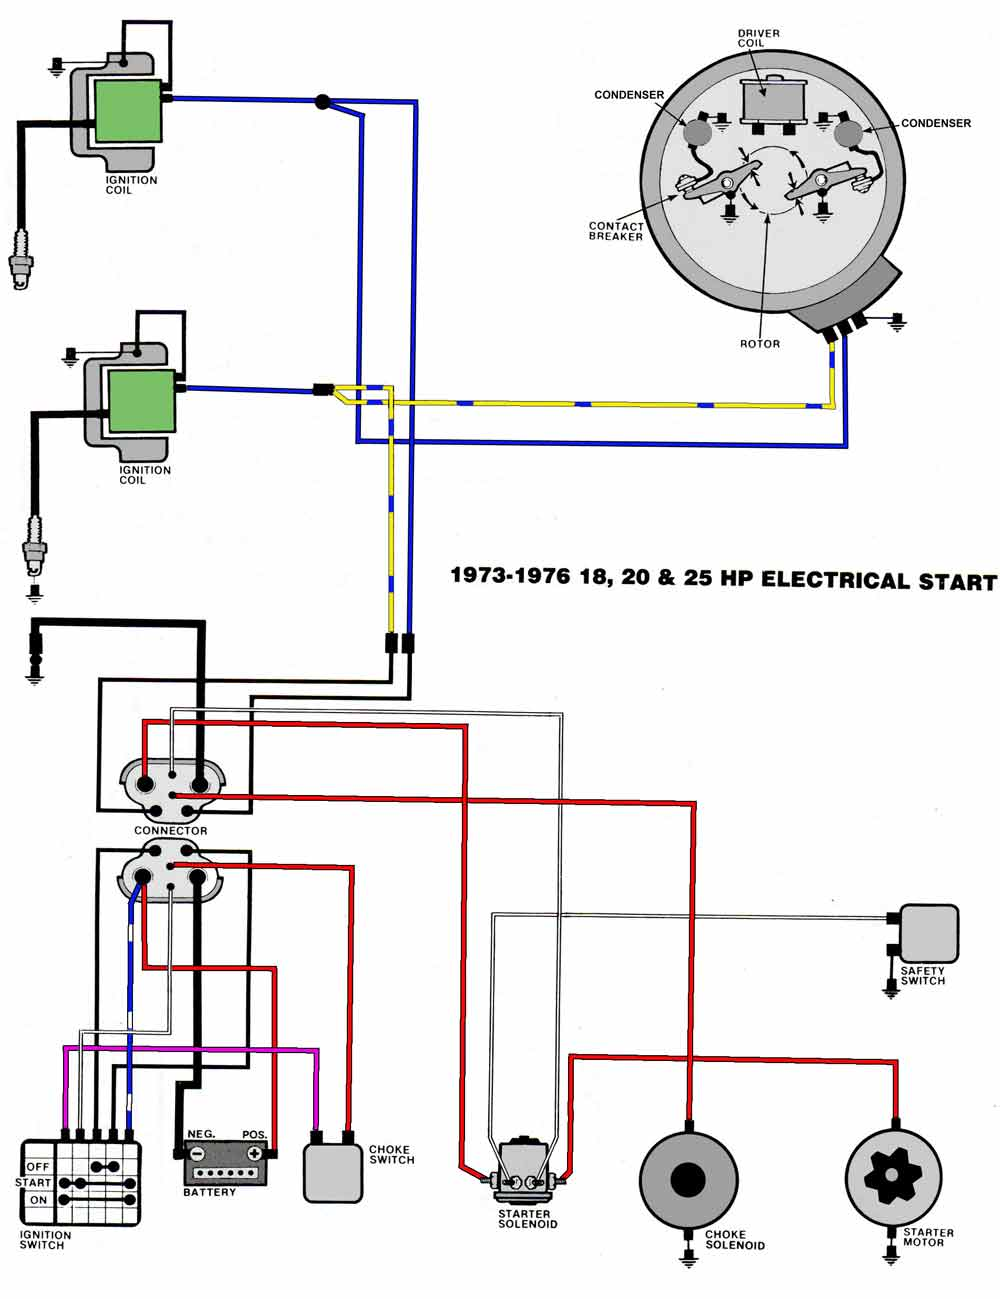 25 Hp Johnson Wiring Diagram - Free Vehicle Wiring Diagrams •  Hp Mercury Control Box Wiring Diagram on mariner 115 hp wiring diagram, mercury 75 hp voltage regulator, mercury 75 hp engine,